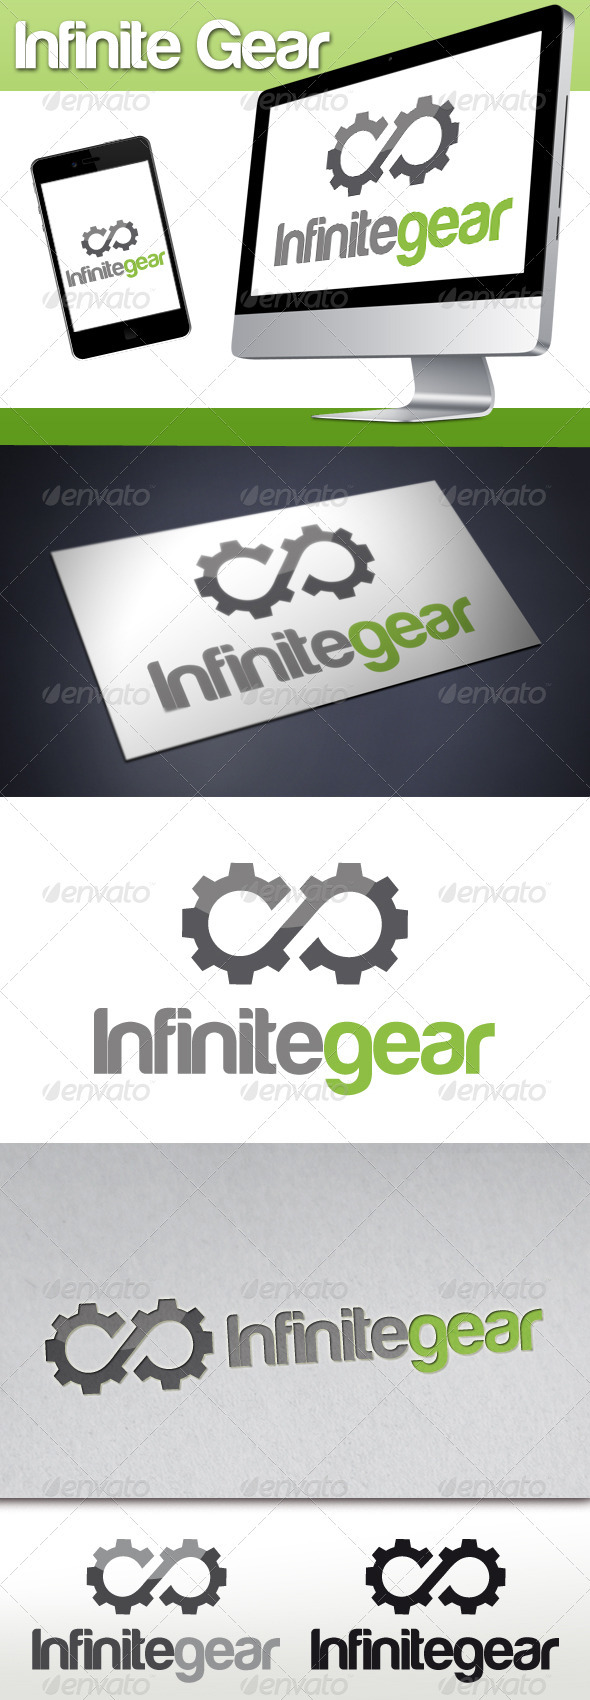 Infinite Gear Logo - Objects Logo Templates